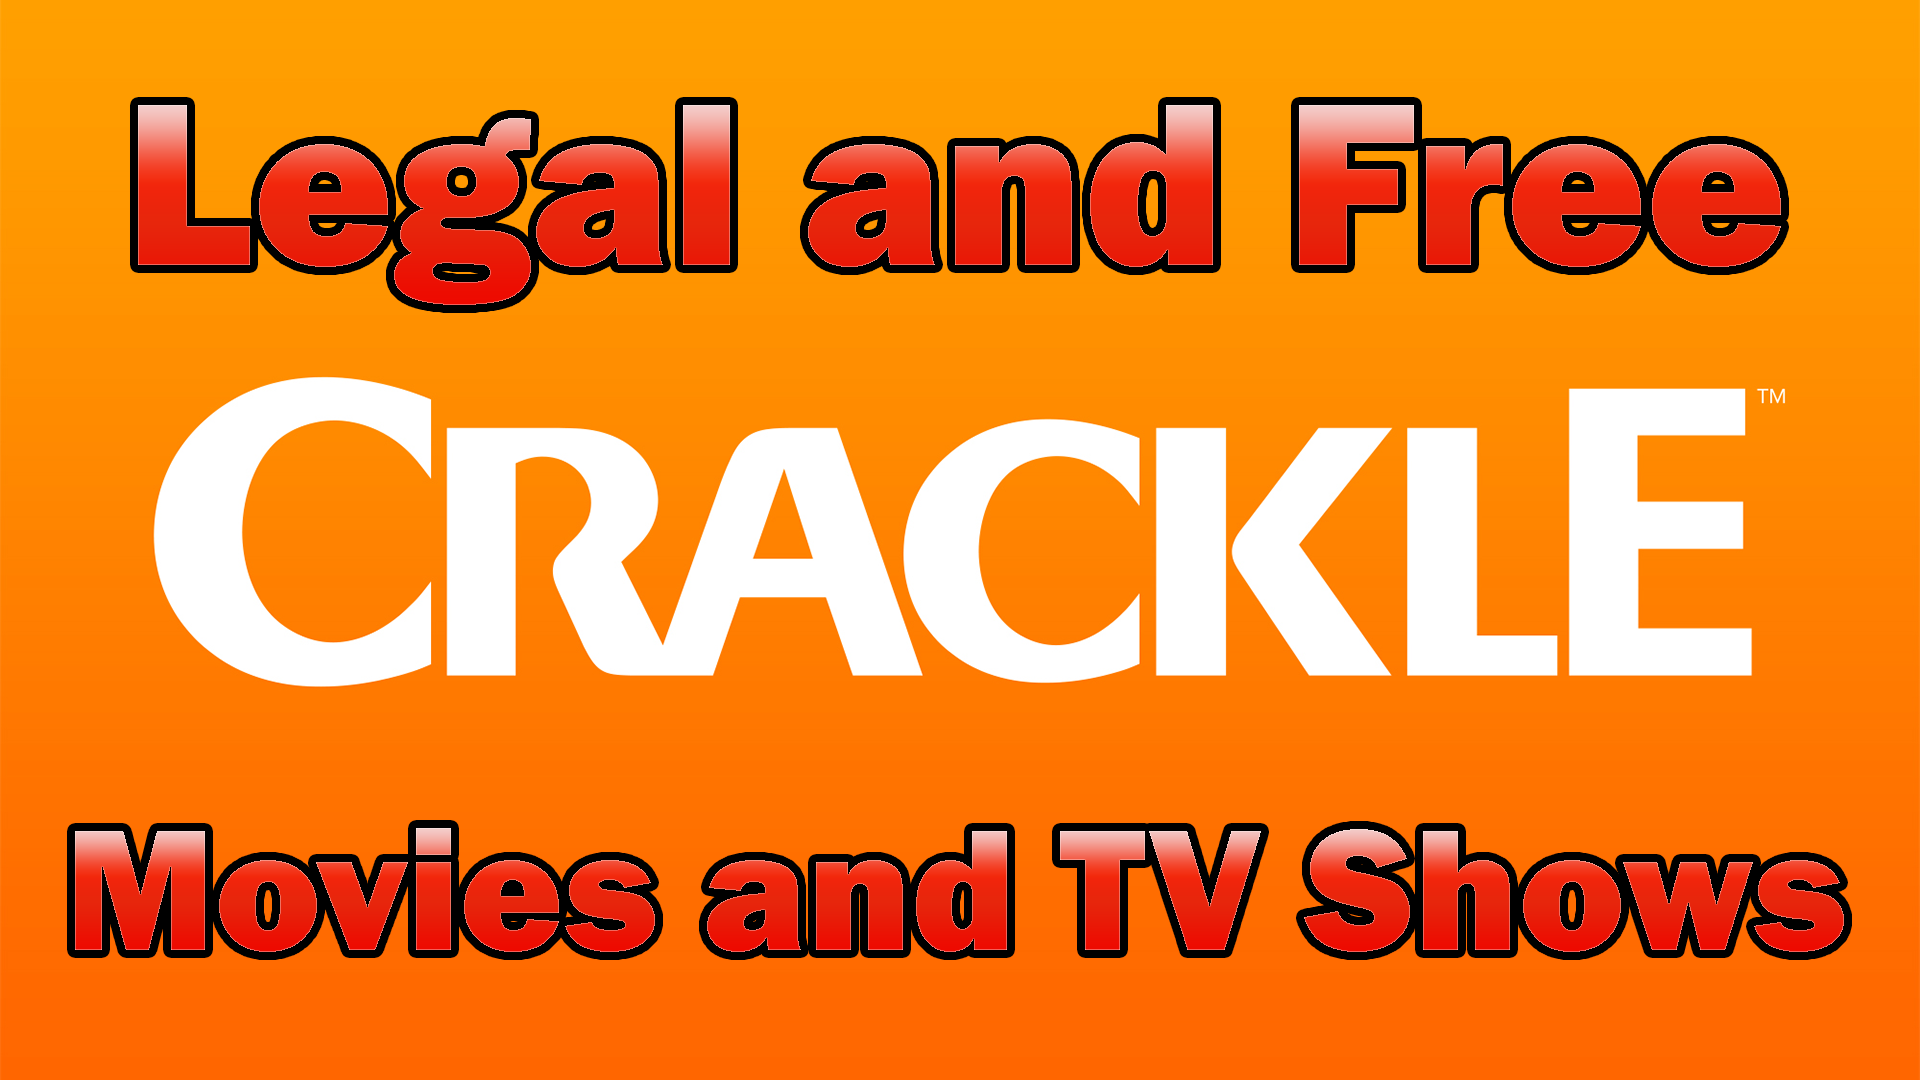 Sony Crackle has FREE Legal Movies and TV Shows to Stream